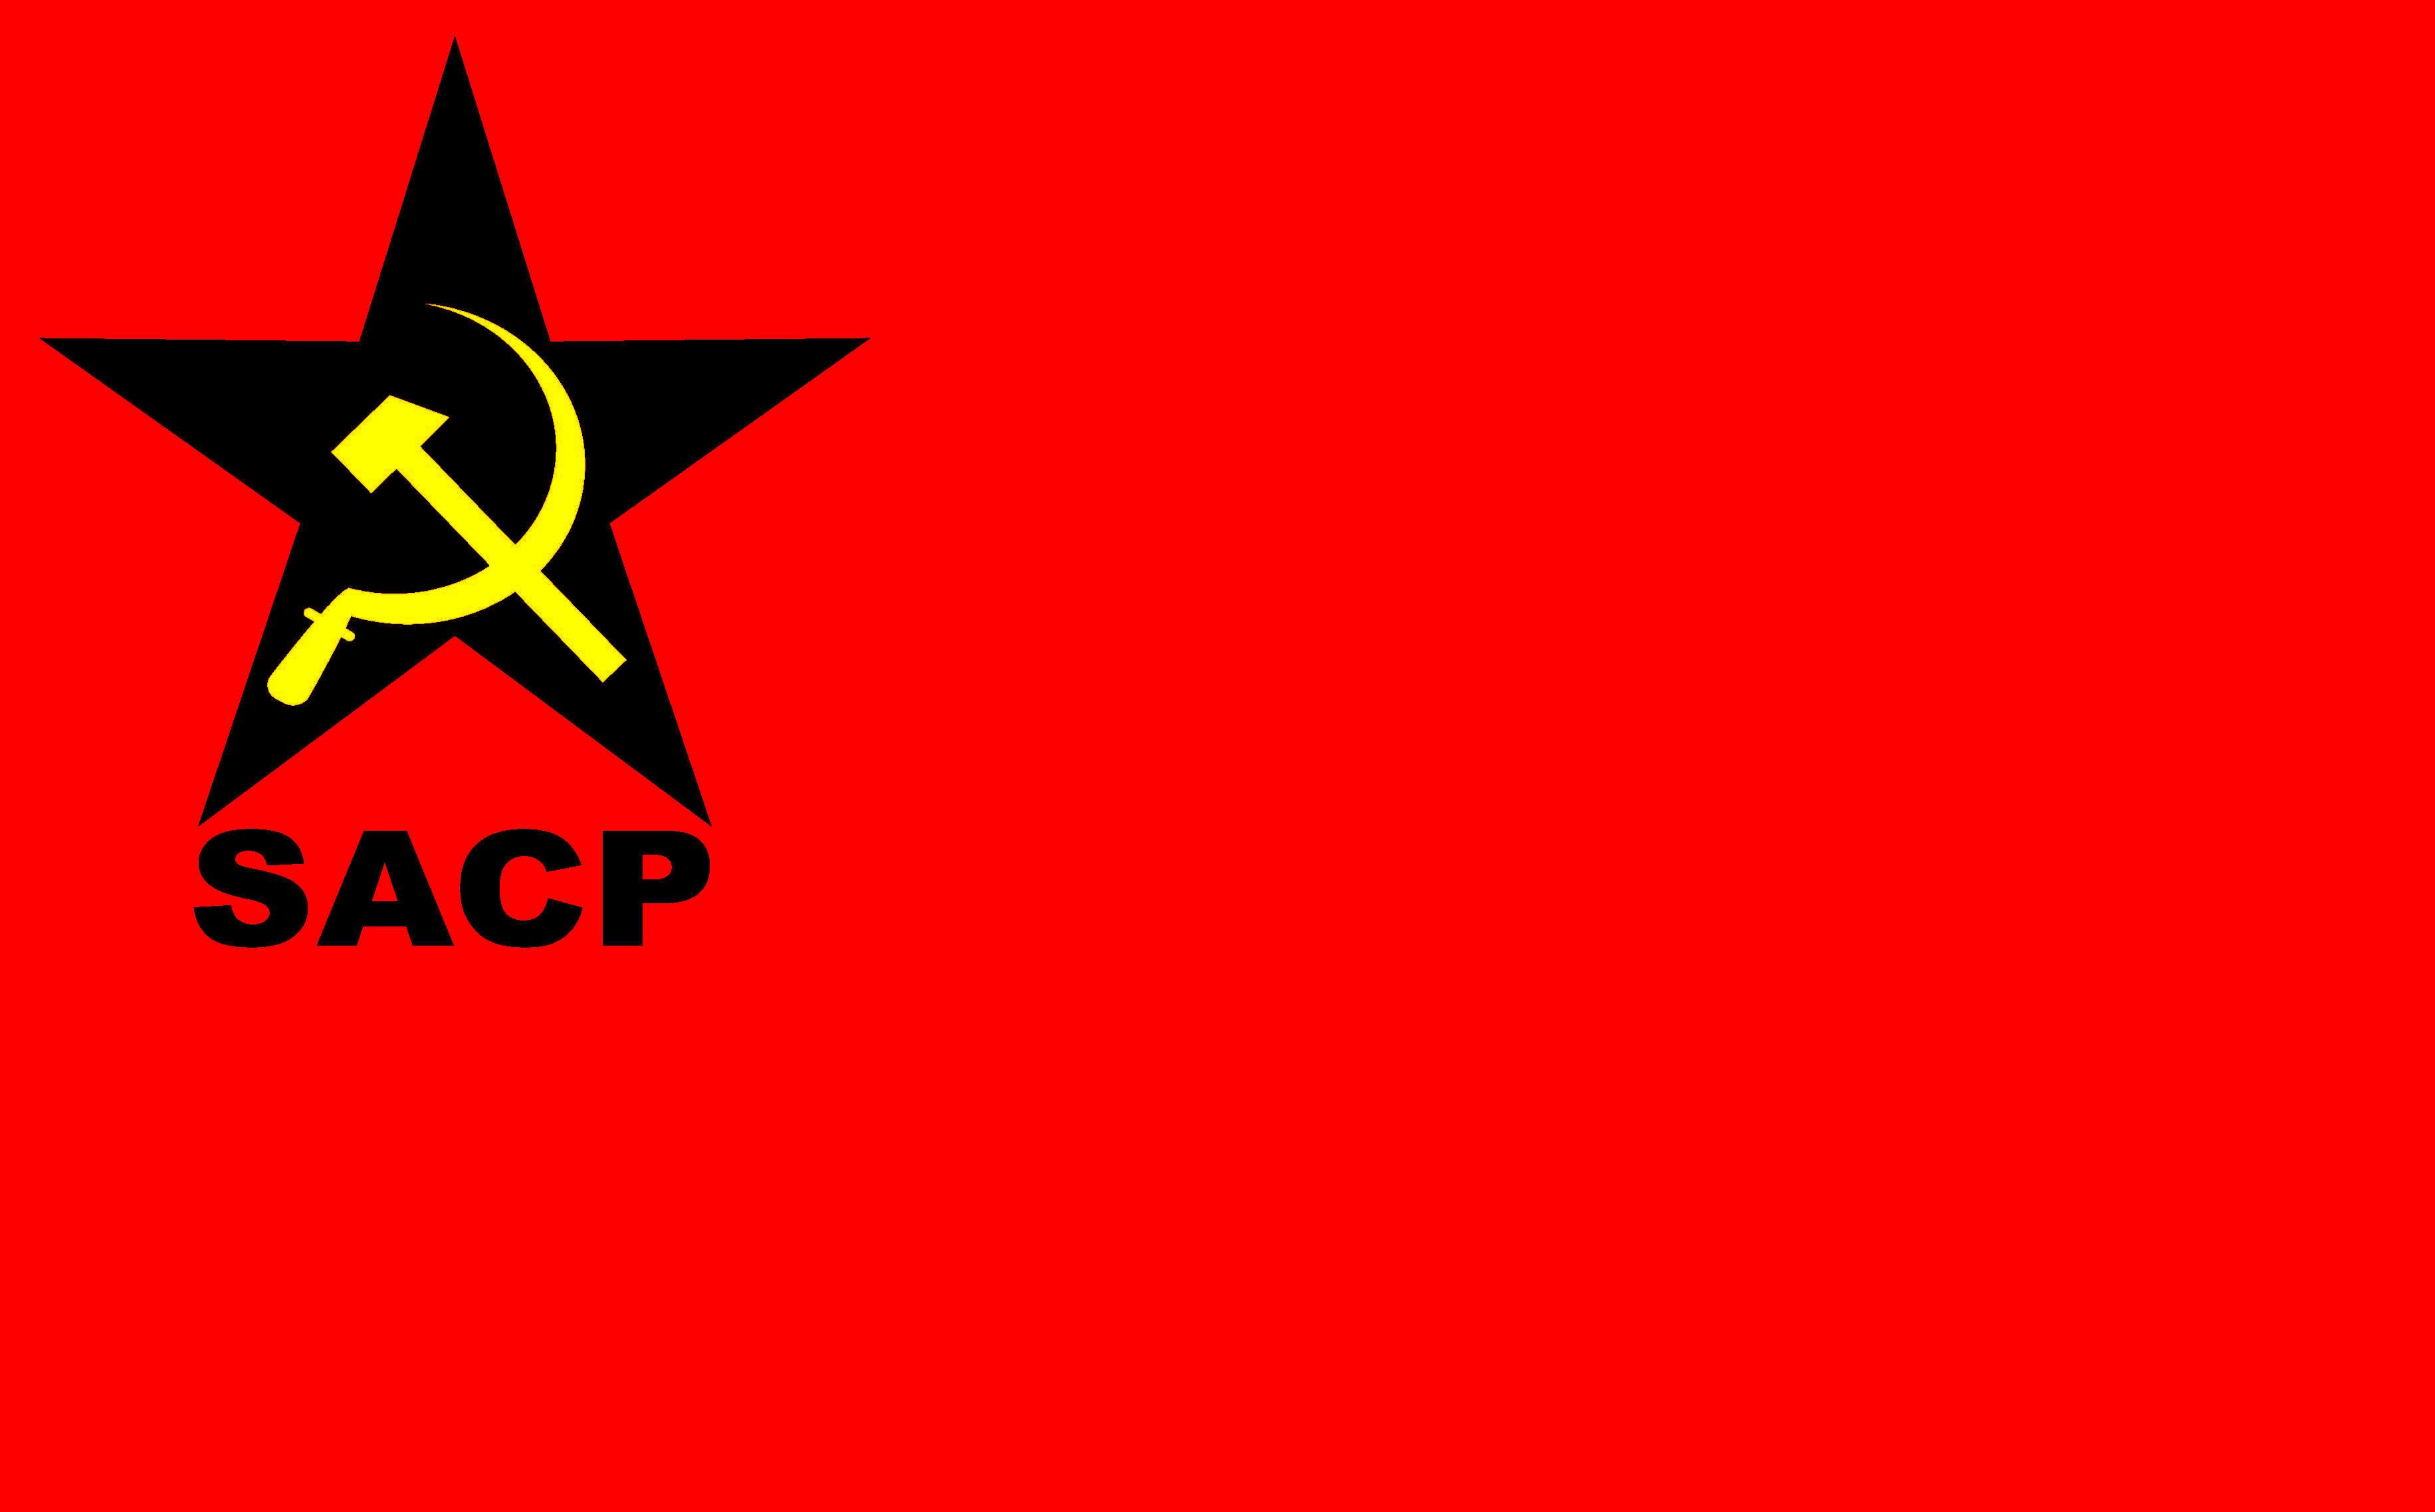 South african communist party sacp sacp flag with the abbreviated name beneath the party logo buycottarizona